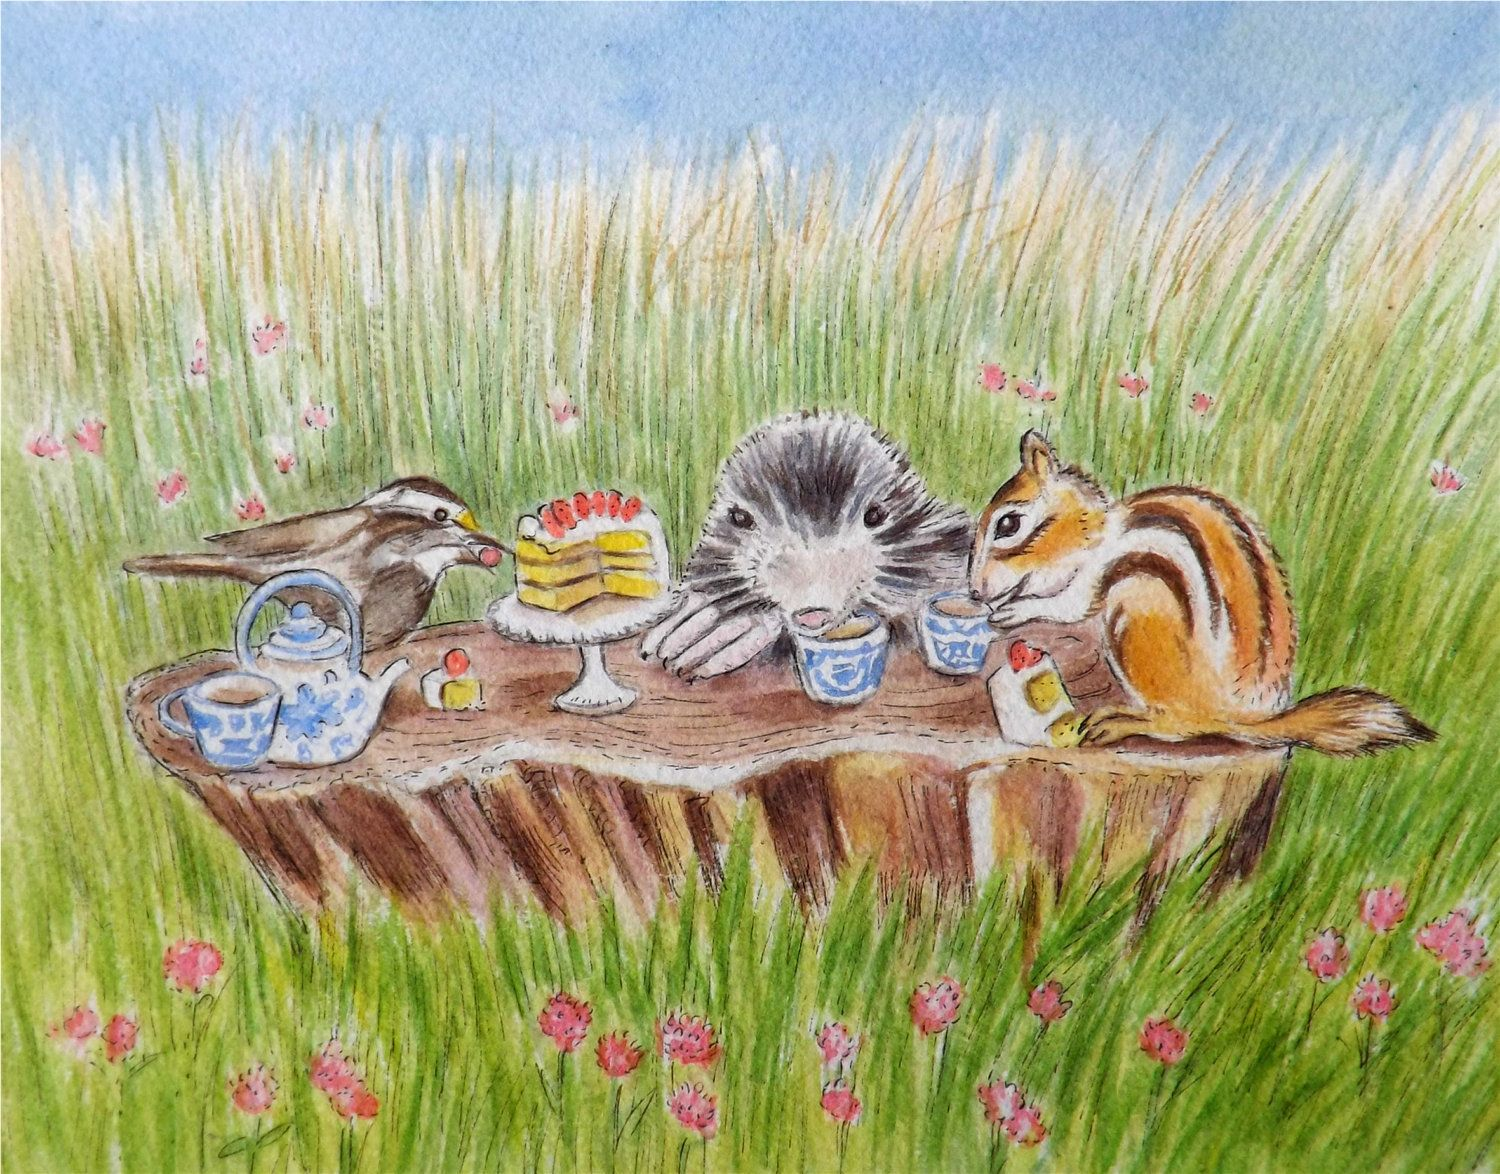 Bottle brush woodland animals - Animal Picnic Illustration Woodland Original Watercolor Art Baby Nursery Decor Home Decor Sparrow Mole Chipmunk Tea Party